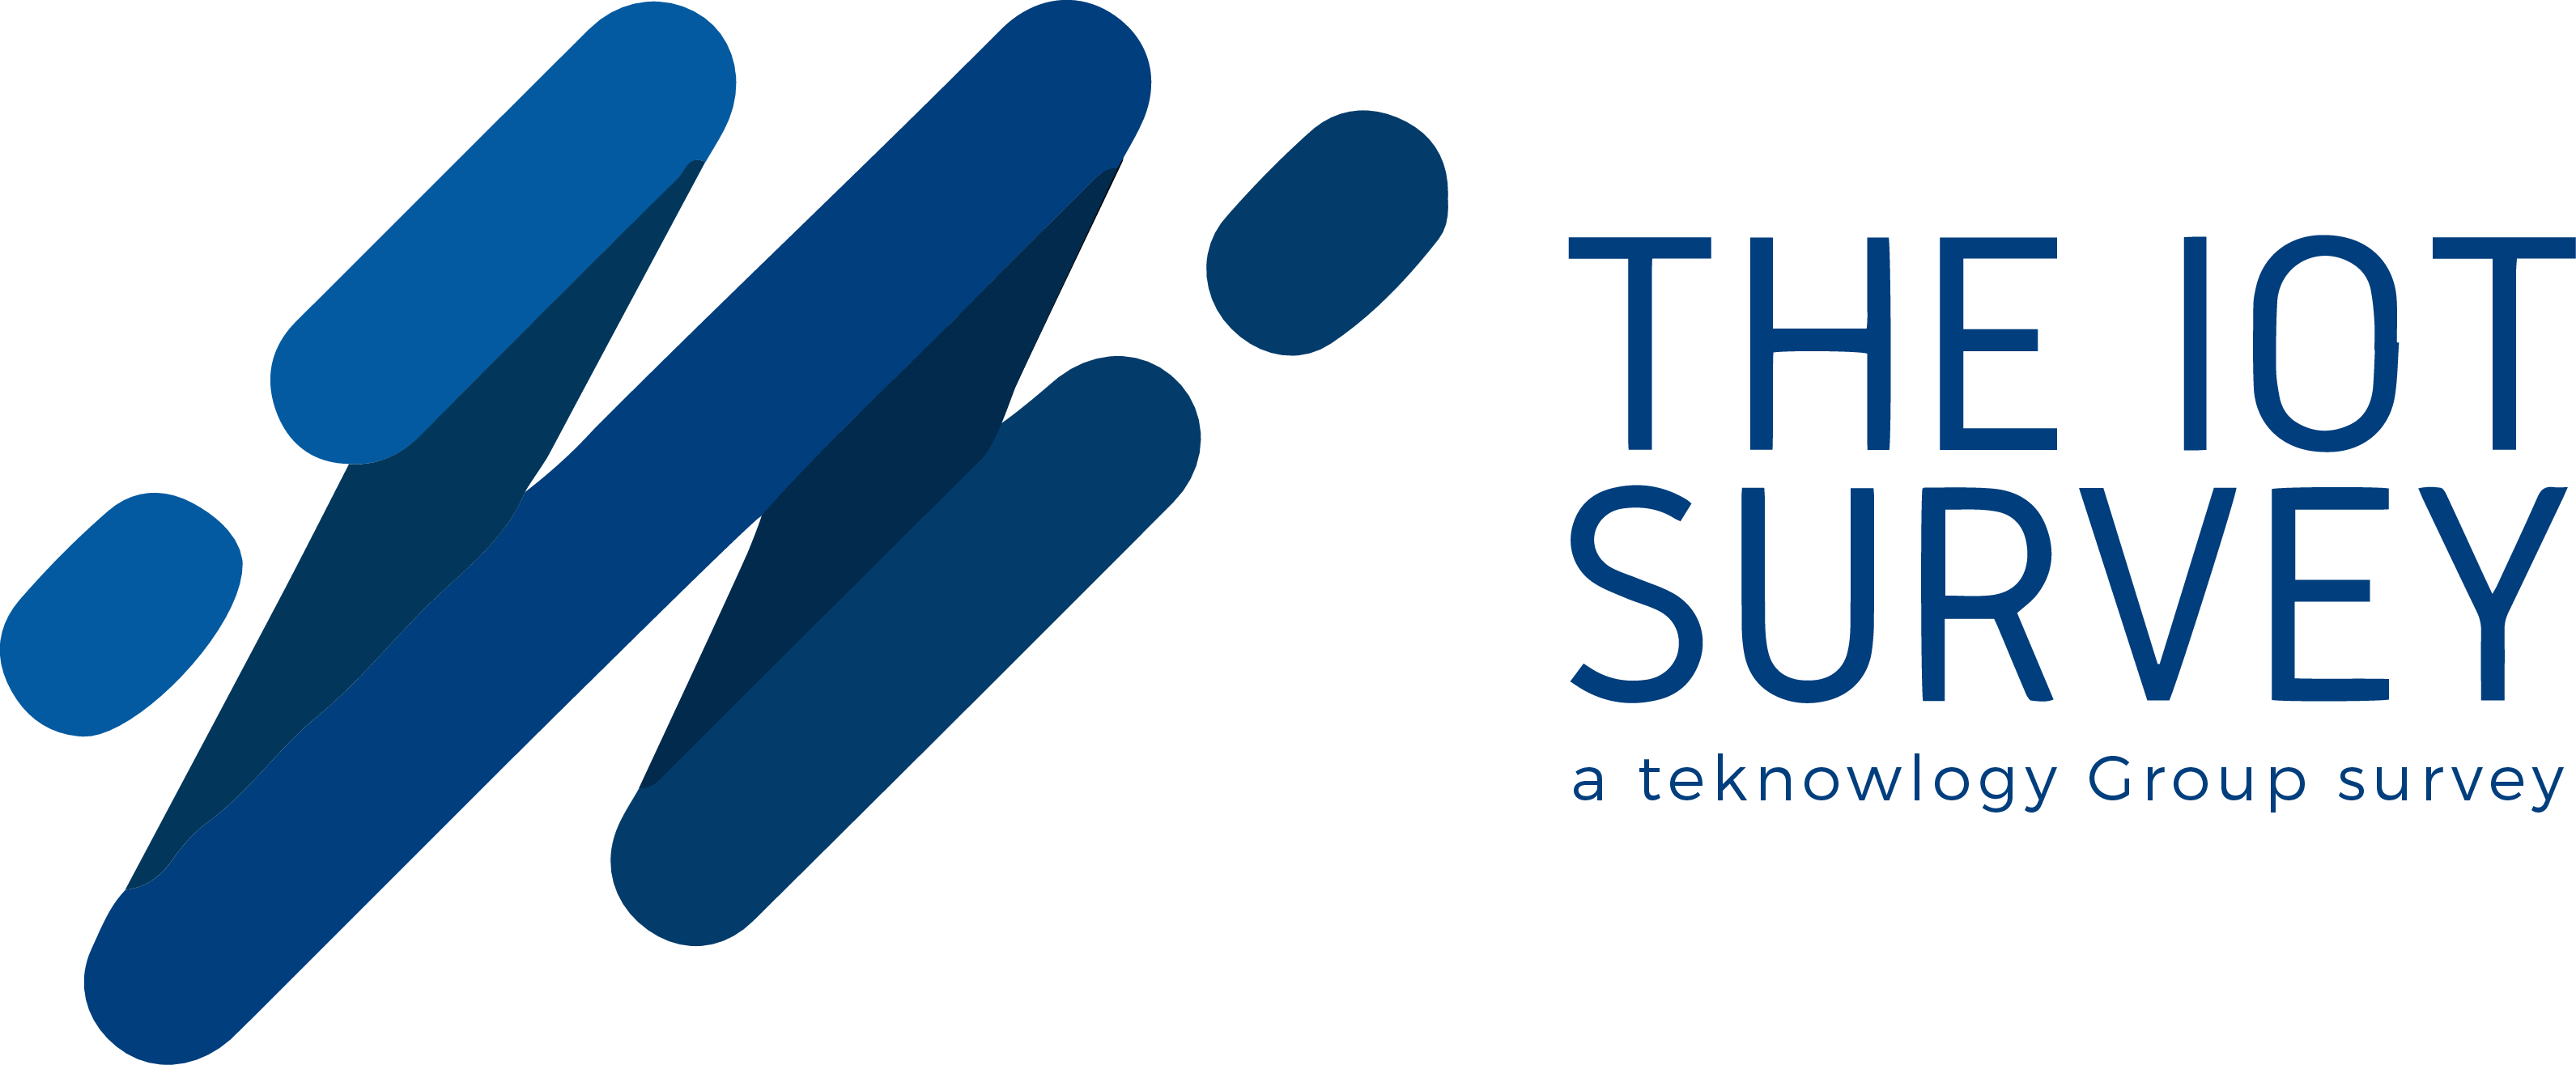 IoT-Survey-Logo-dark-blue